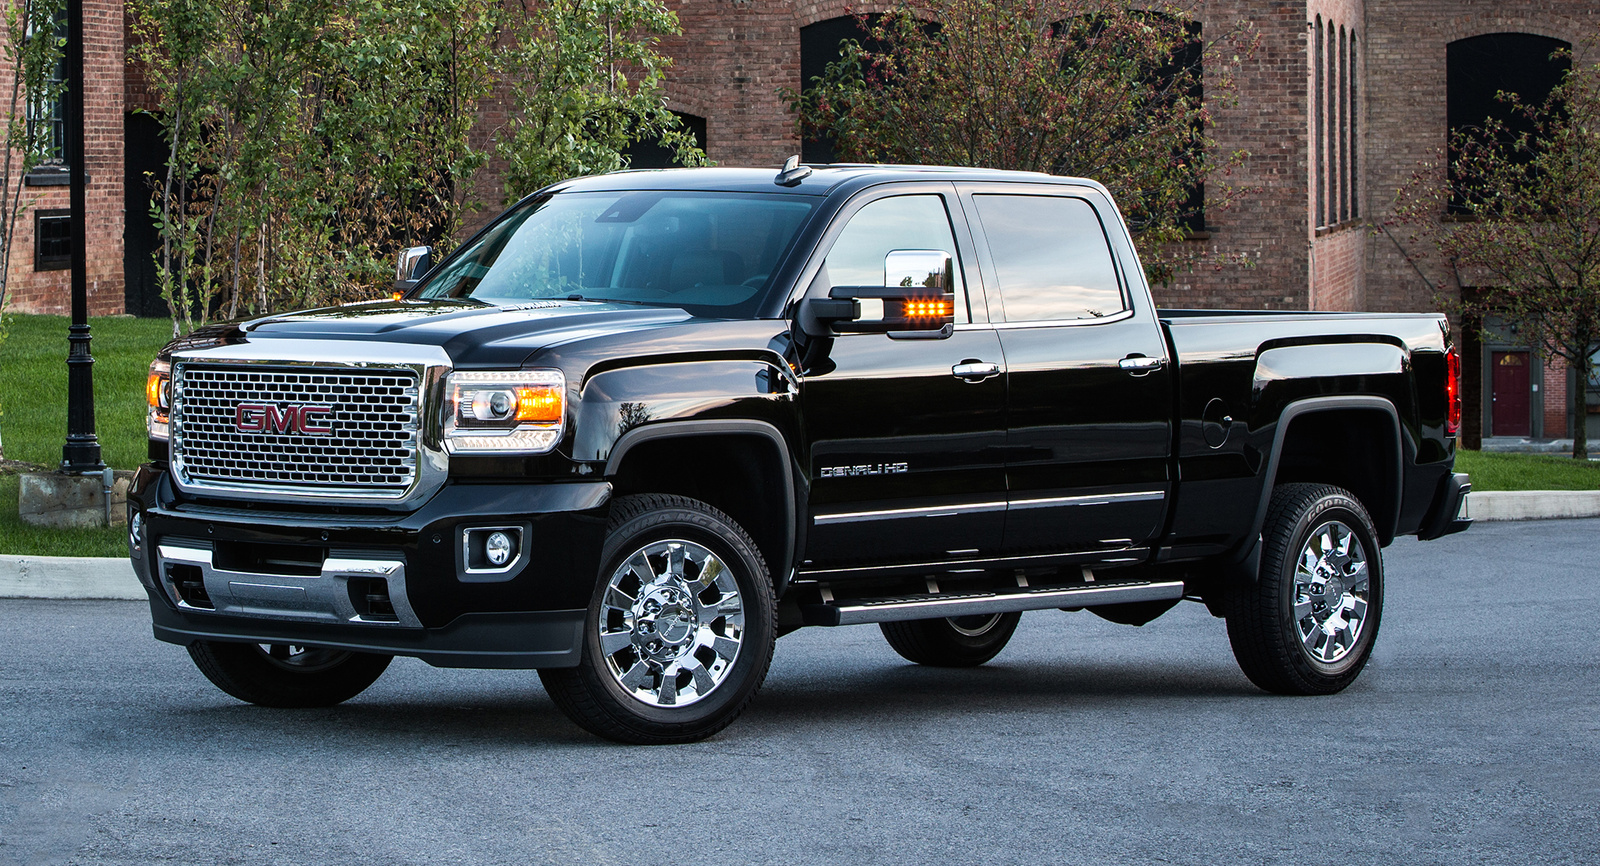 2016 gmc sierra denali interior. Black Bedroom Furniture Sets. Home Design Ideas